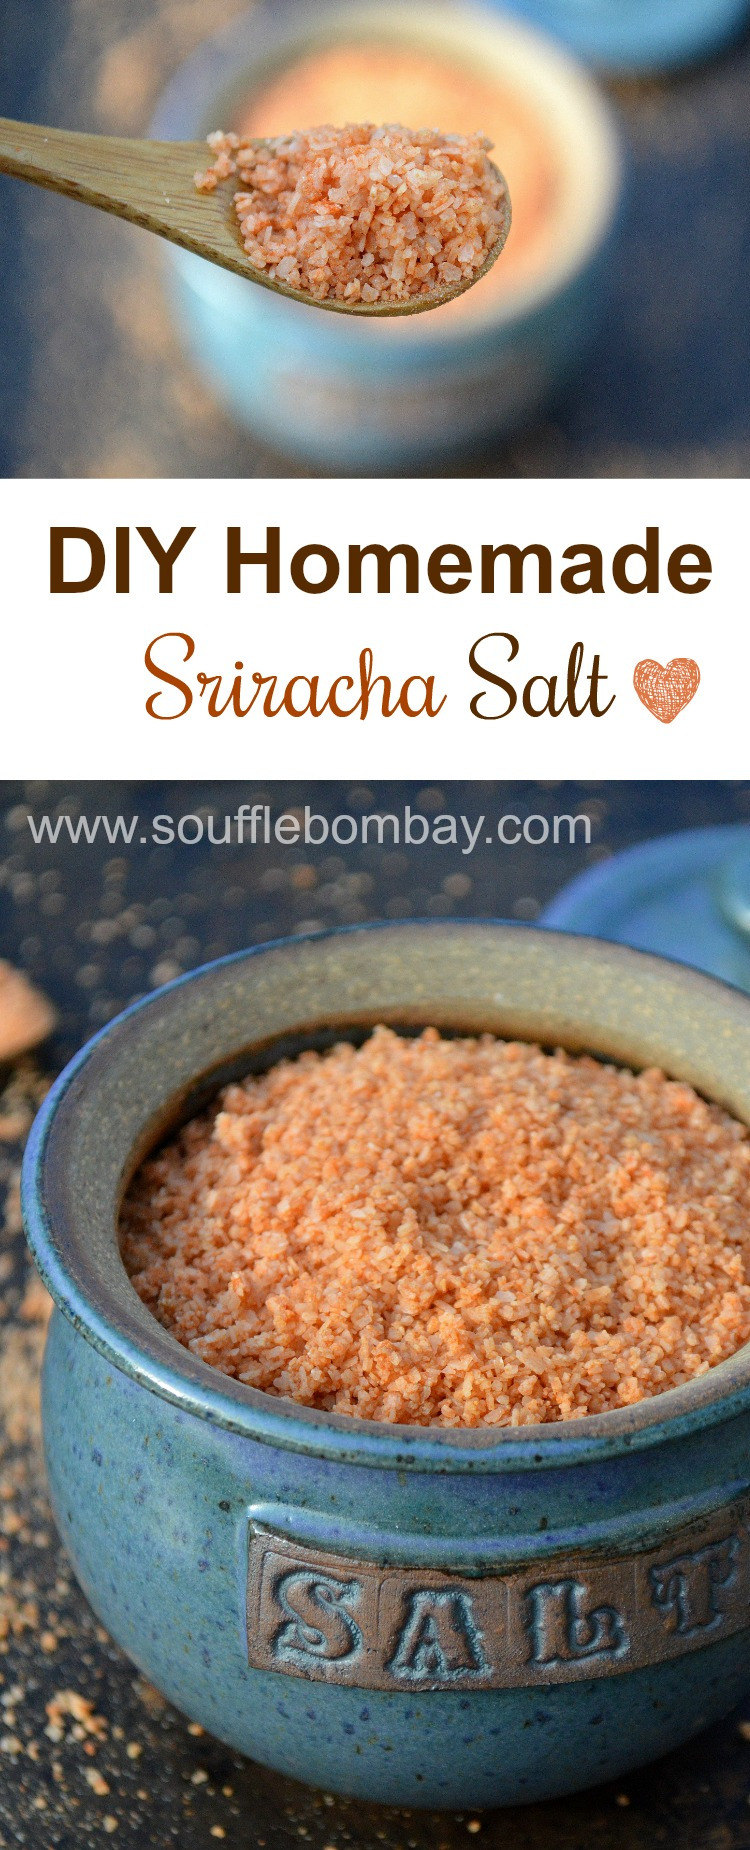 DIY 2 Ingredient Homemade Sriracha Salt makes a great hostess or holiday gift! It's a flavor explosion!